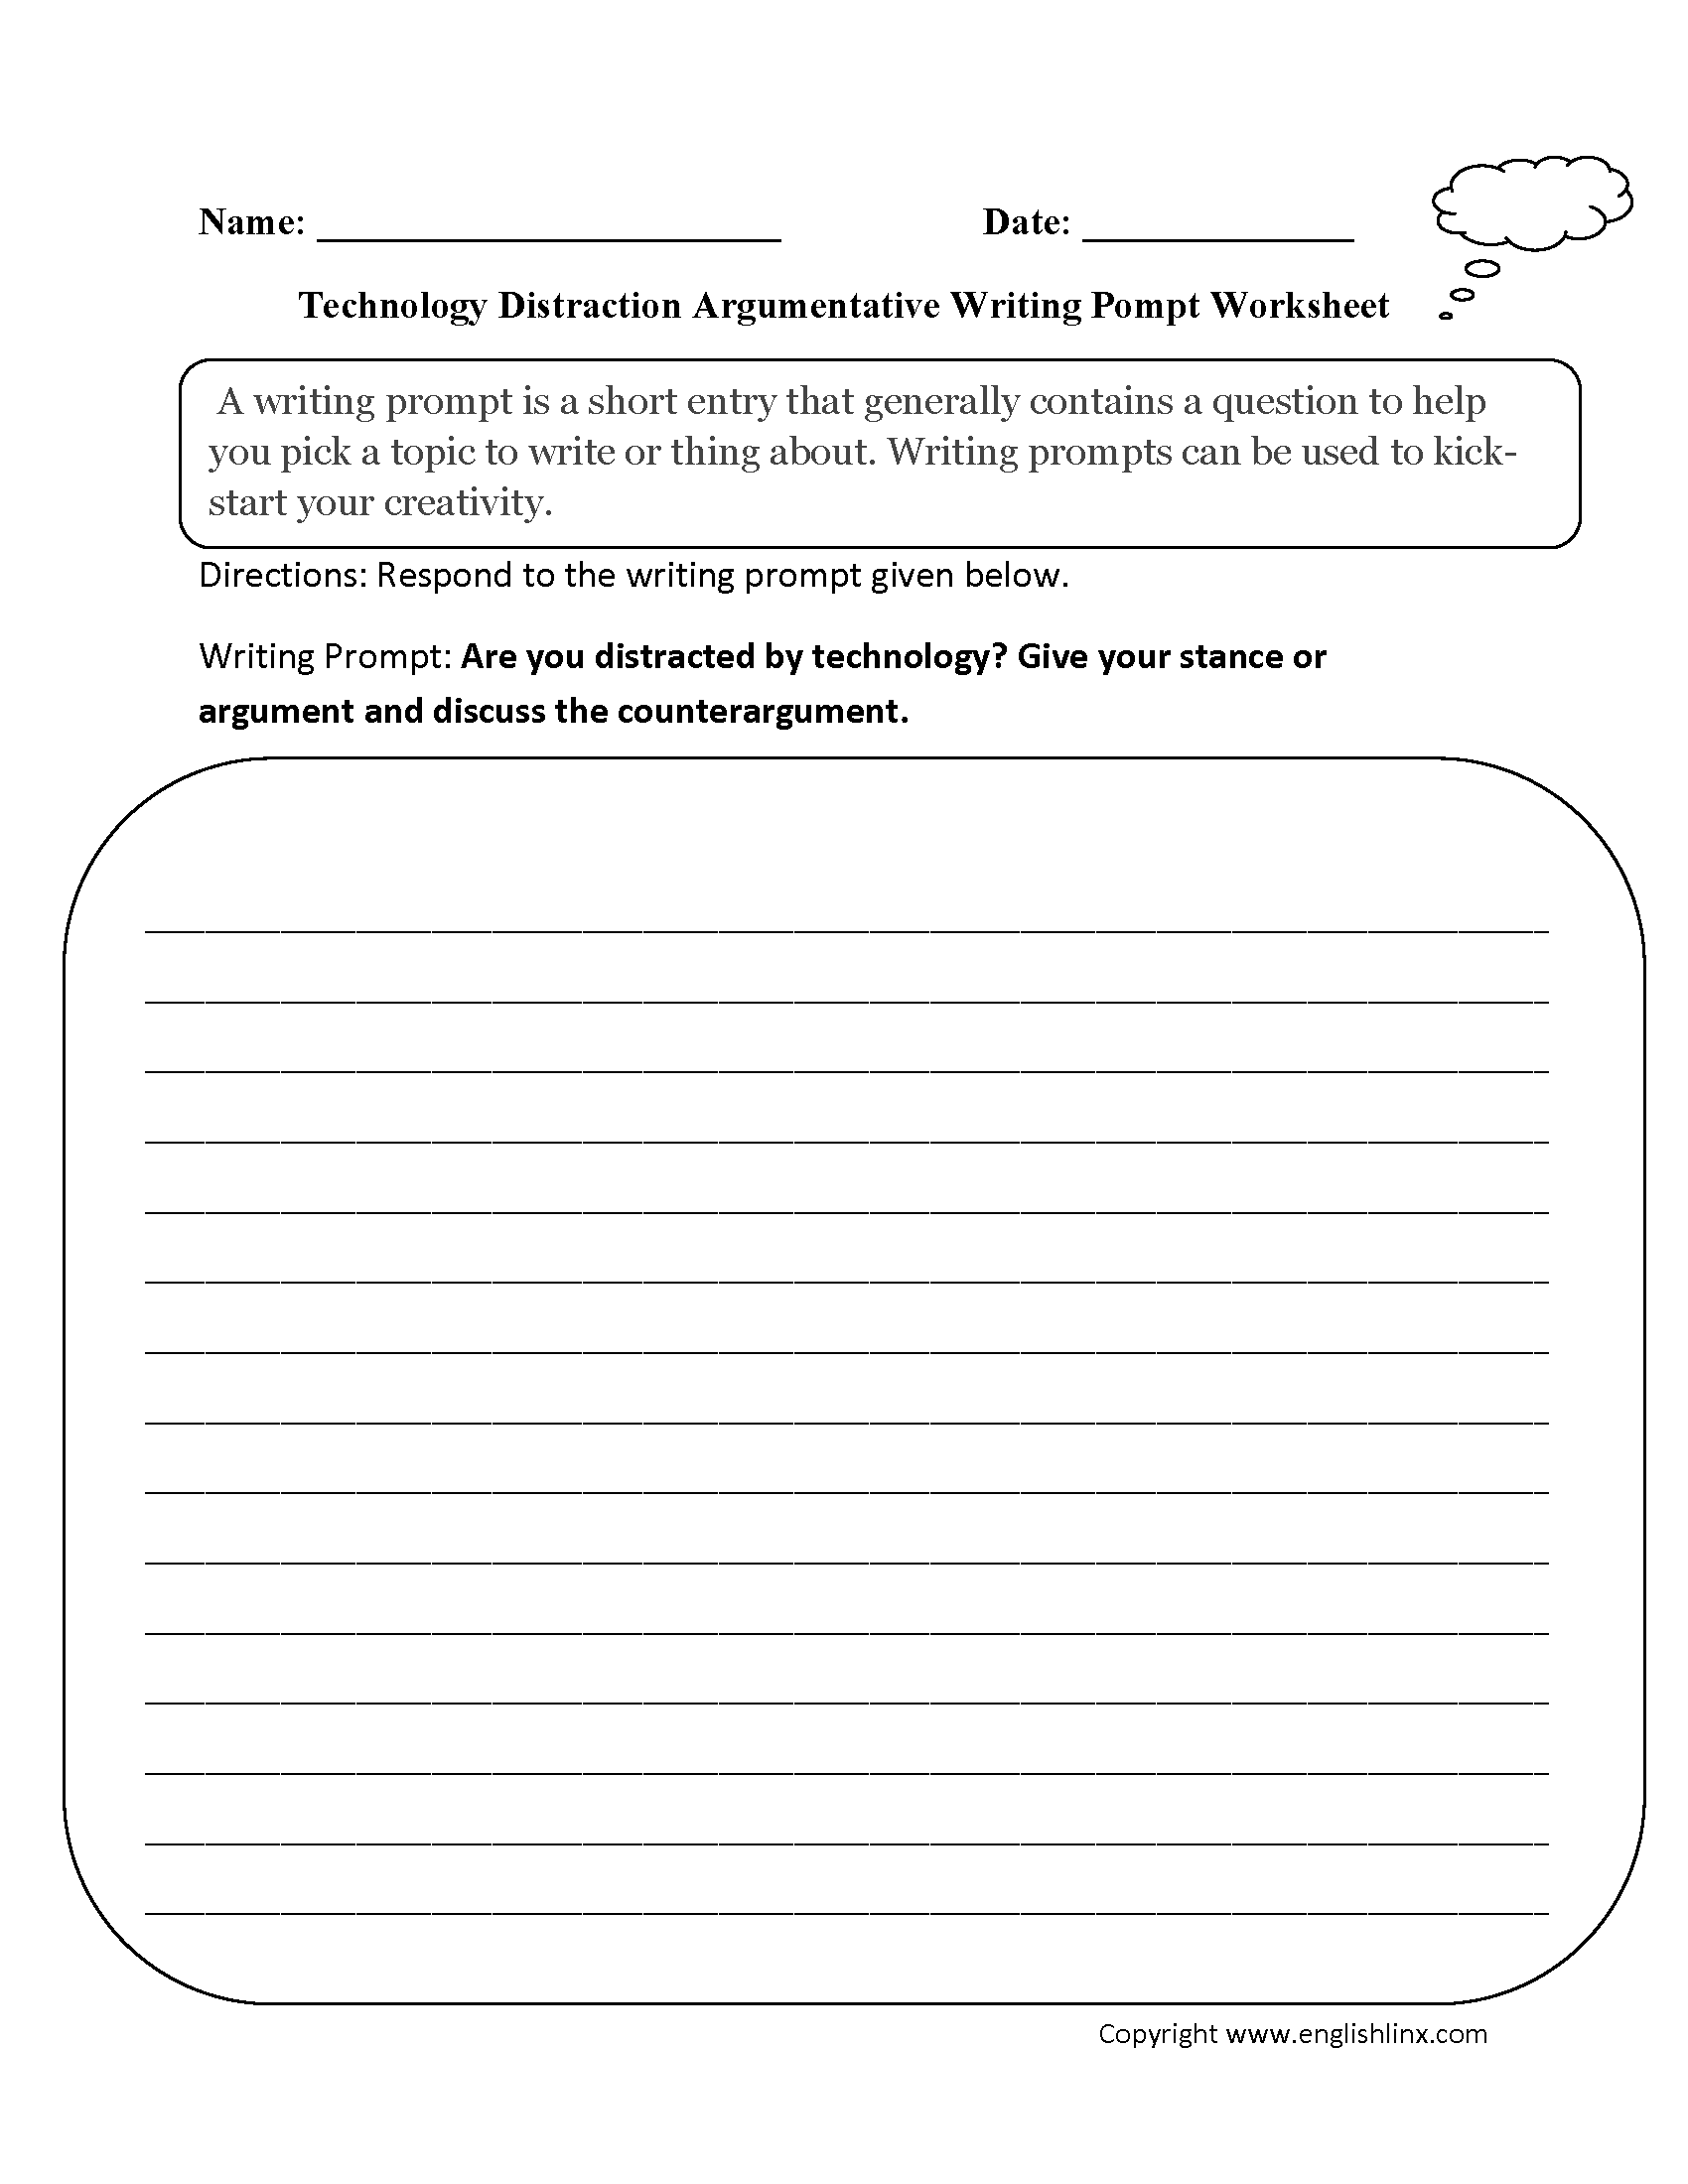 Technology Distraction Argumentative Writing Prompts